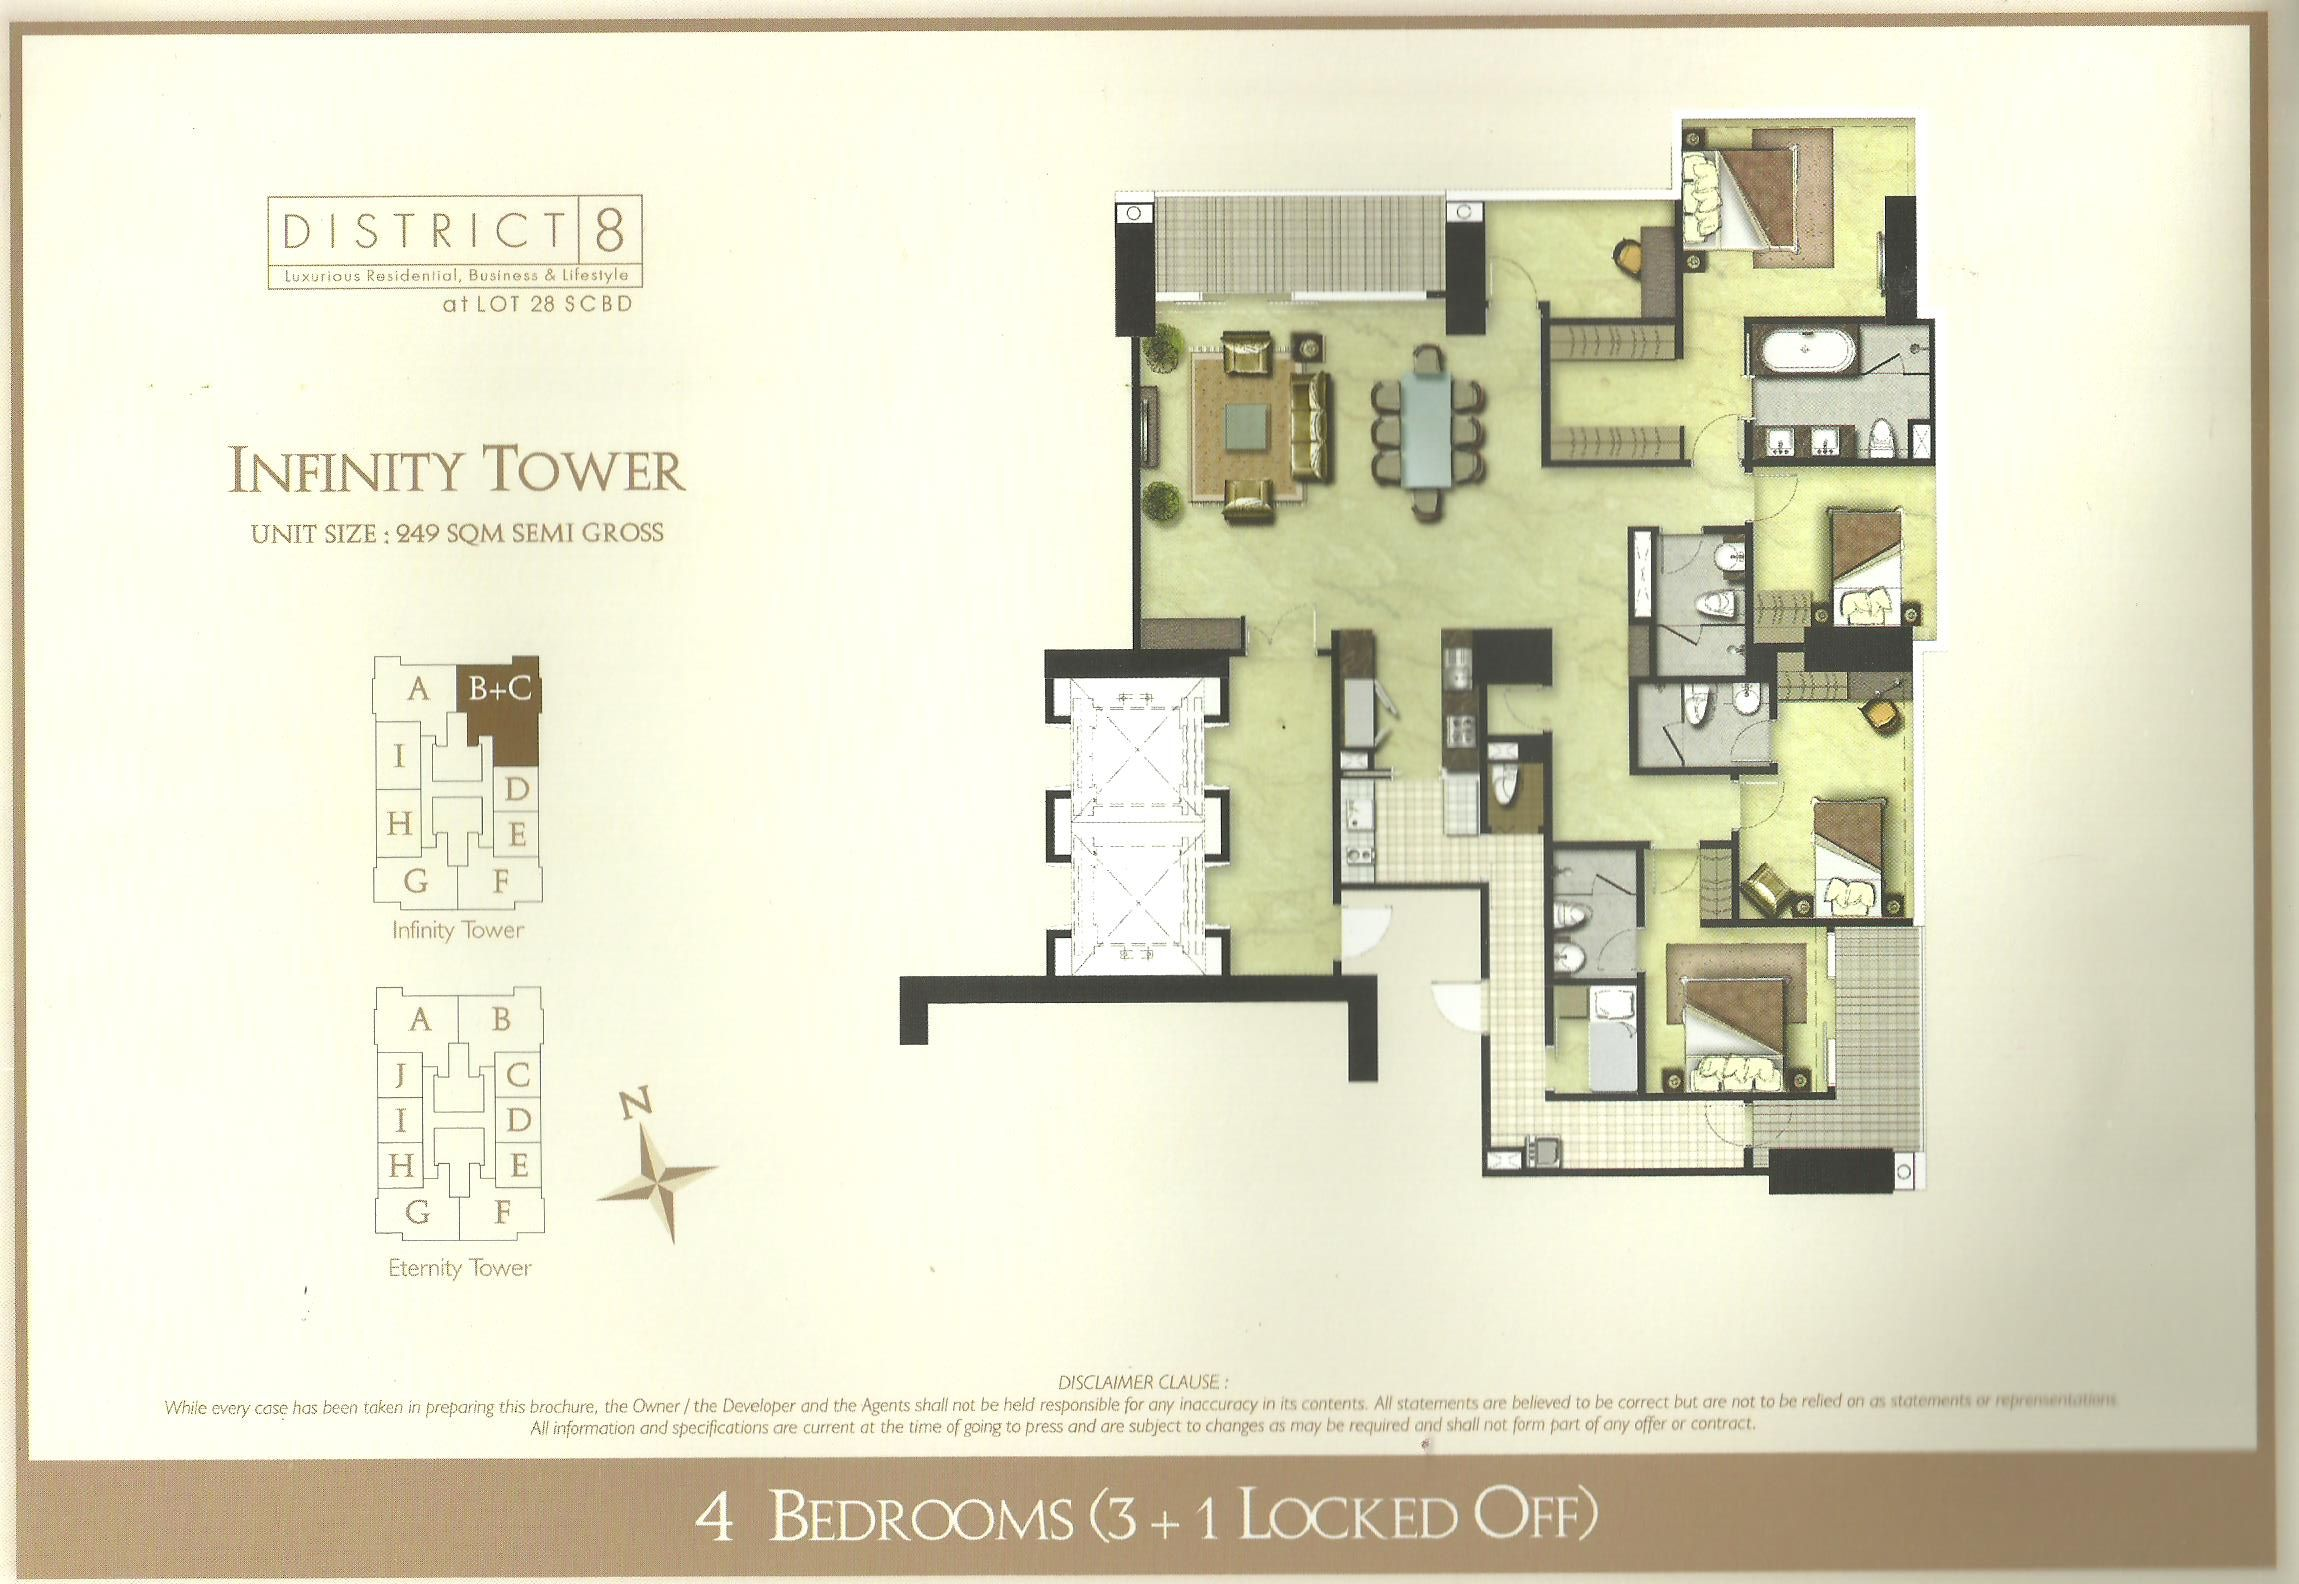 District 8 Luxurious Residential Business And Lifestyle At Lot 28 Scbd Jakarta Apartment Pent House Districts